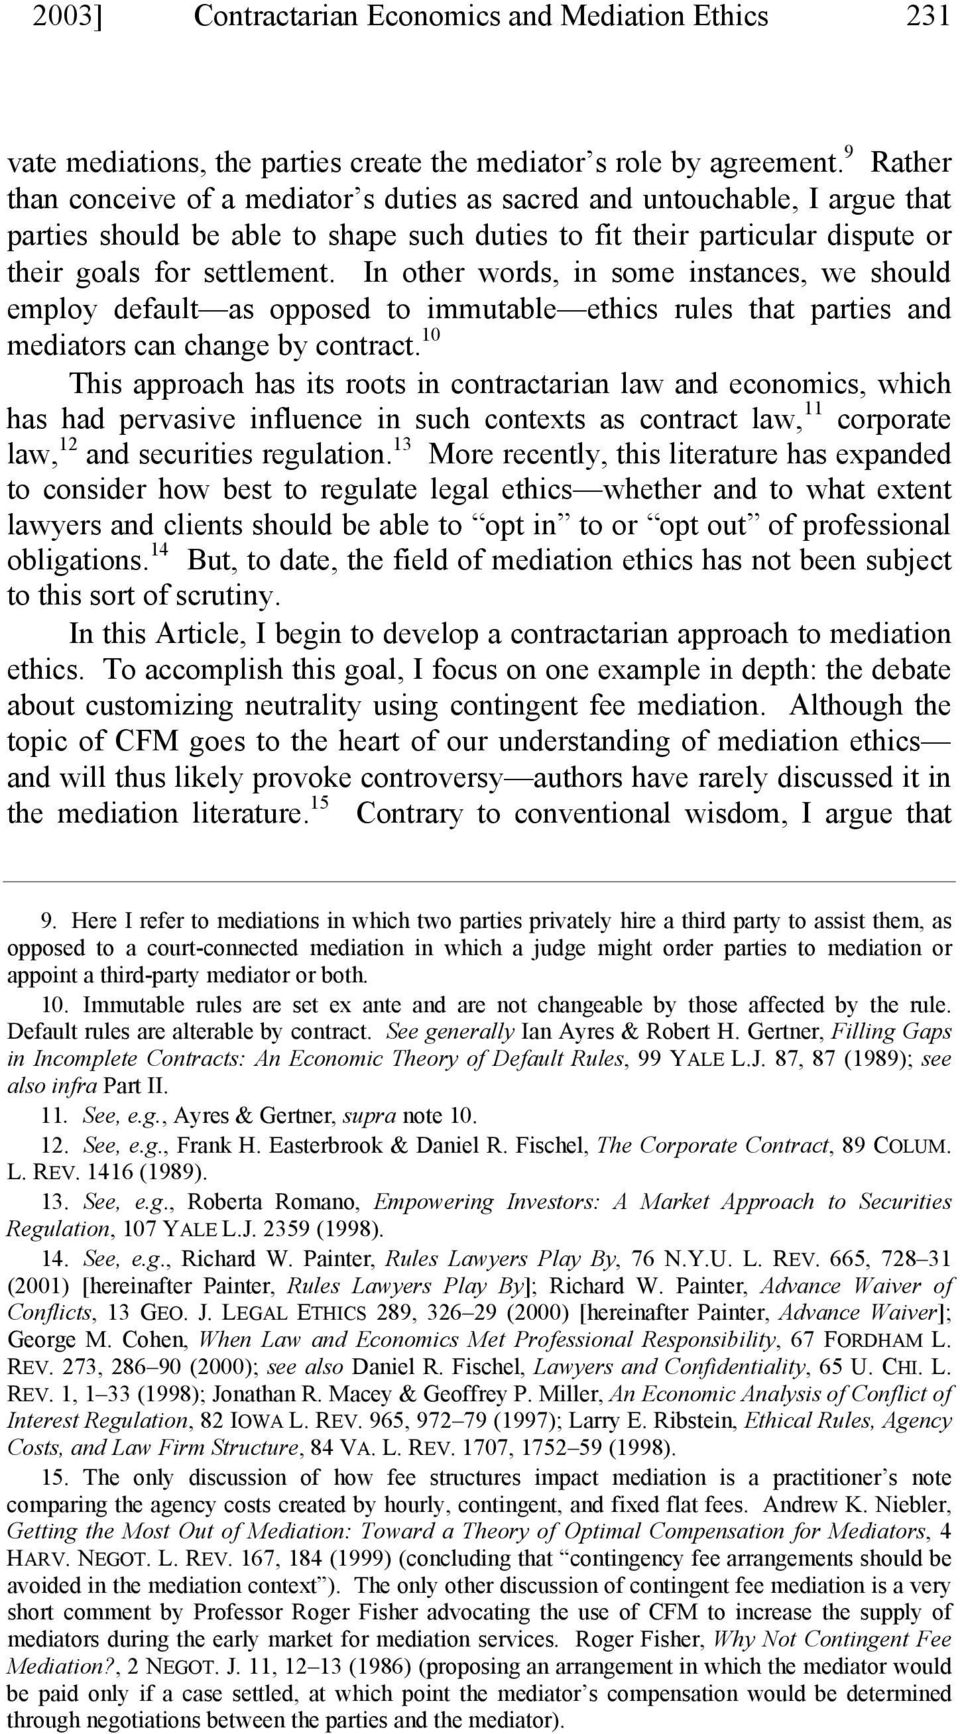 mediation ethics articles